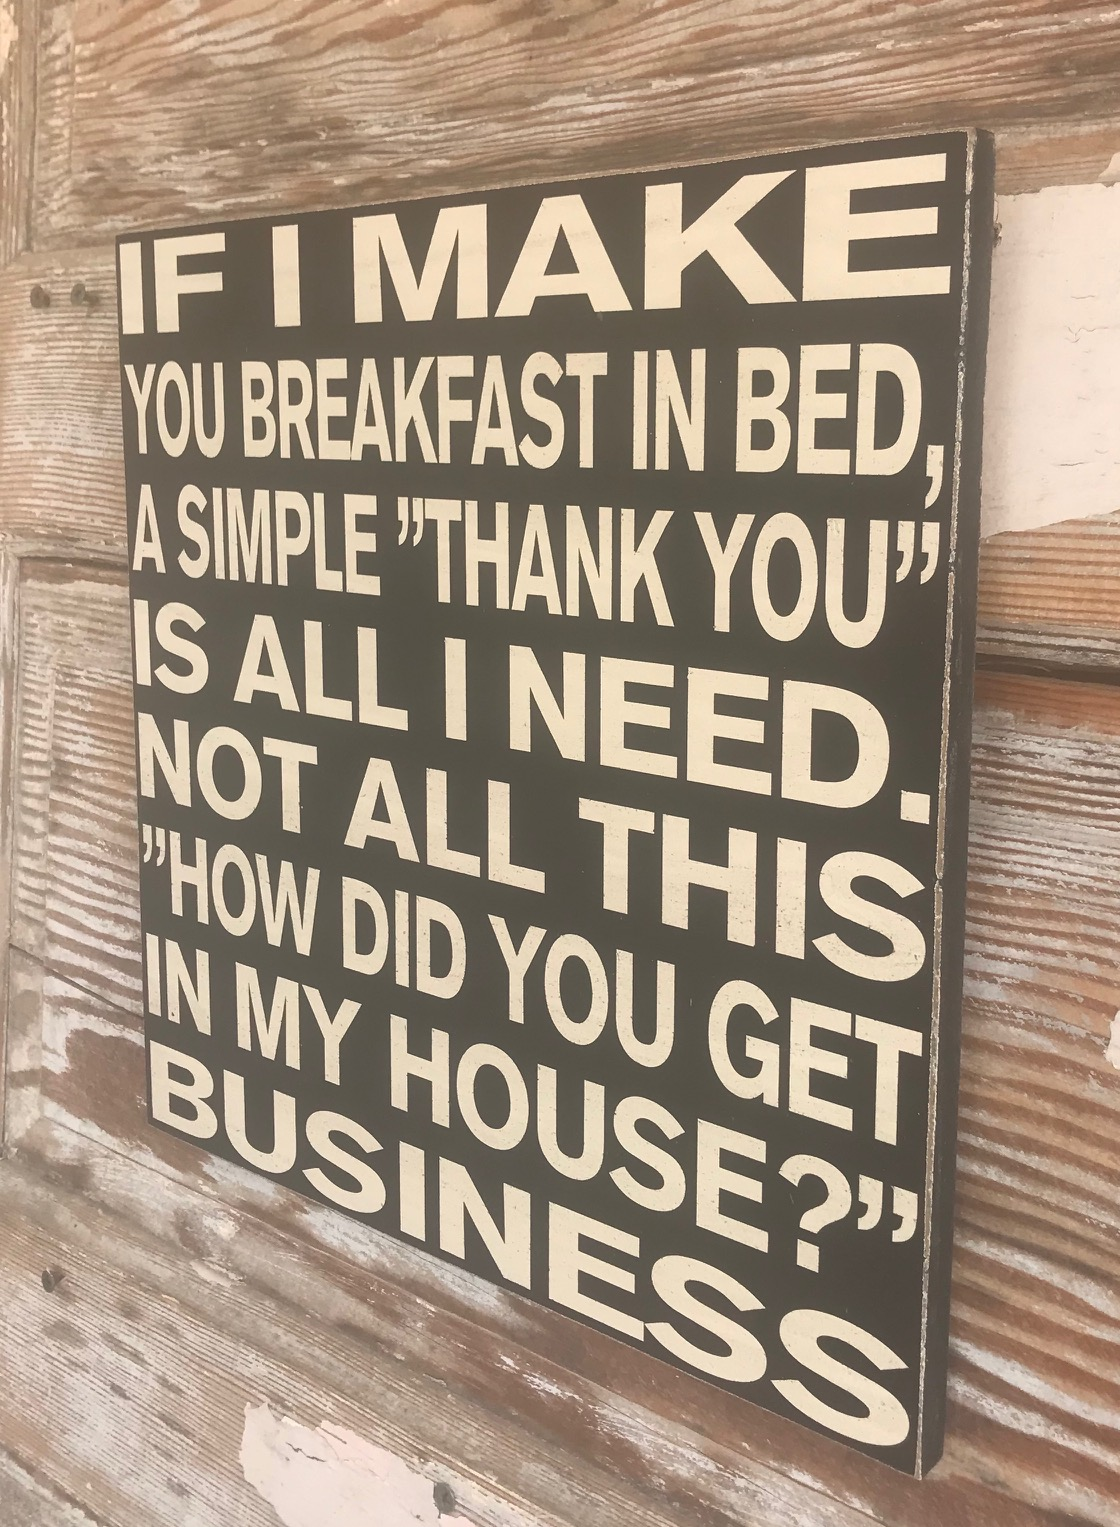 If I Make You Breakfast In Bed A Simple Thank You Is All I Need Not All This How Did You Get In My House Business Funny Wood Sign